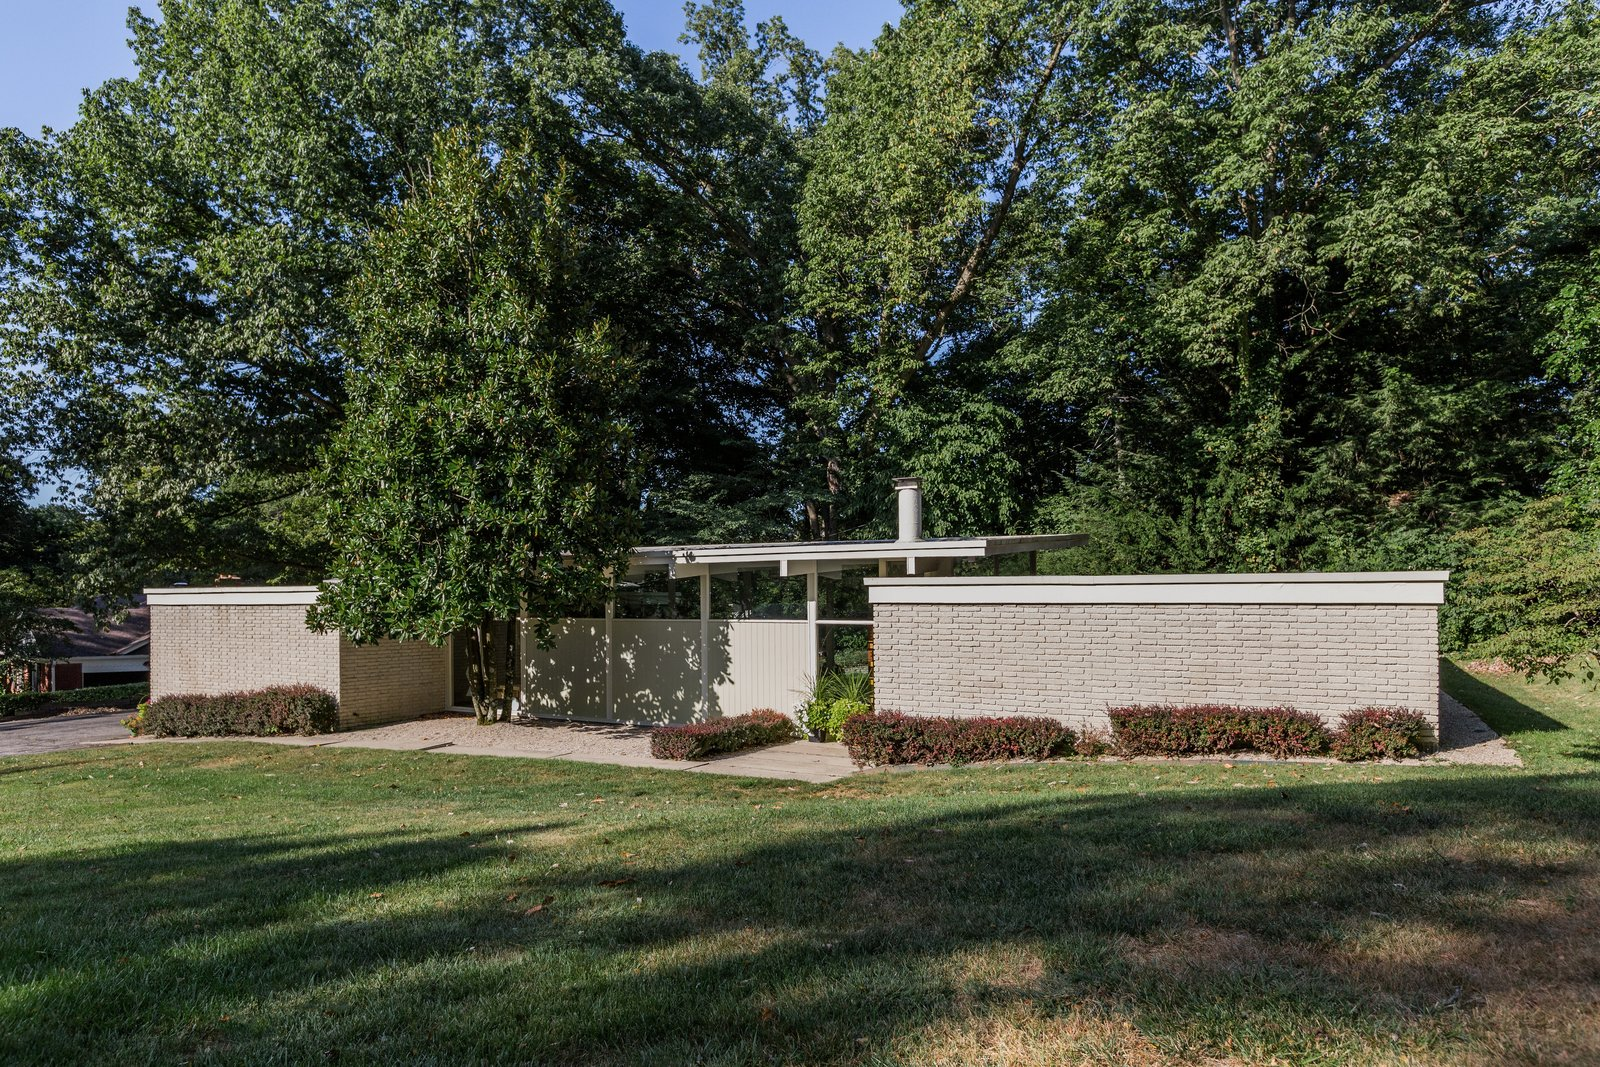 Exterior, House Building Type, and Brick Siding Material  Photo 1 of 10 in A Midcentury Gem by a Famed Indiana Architect Offered at $450K